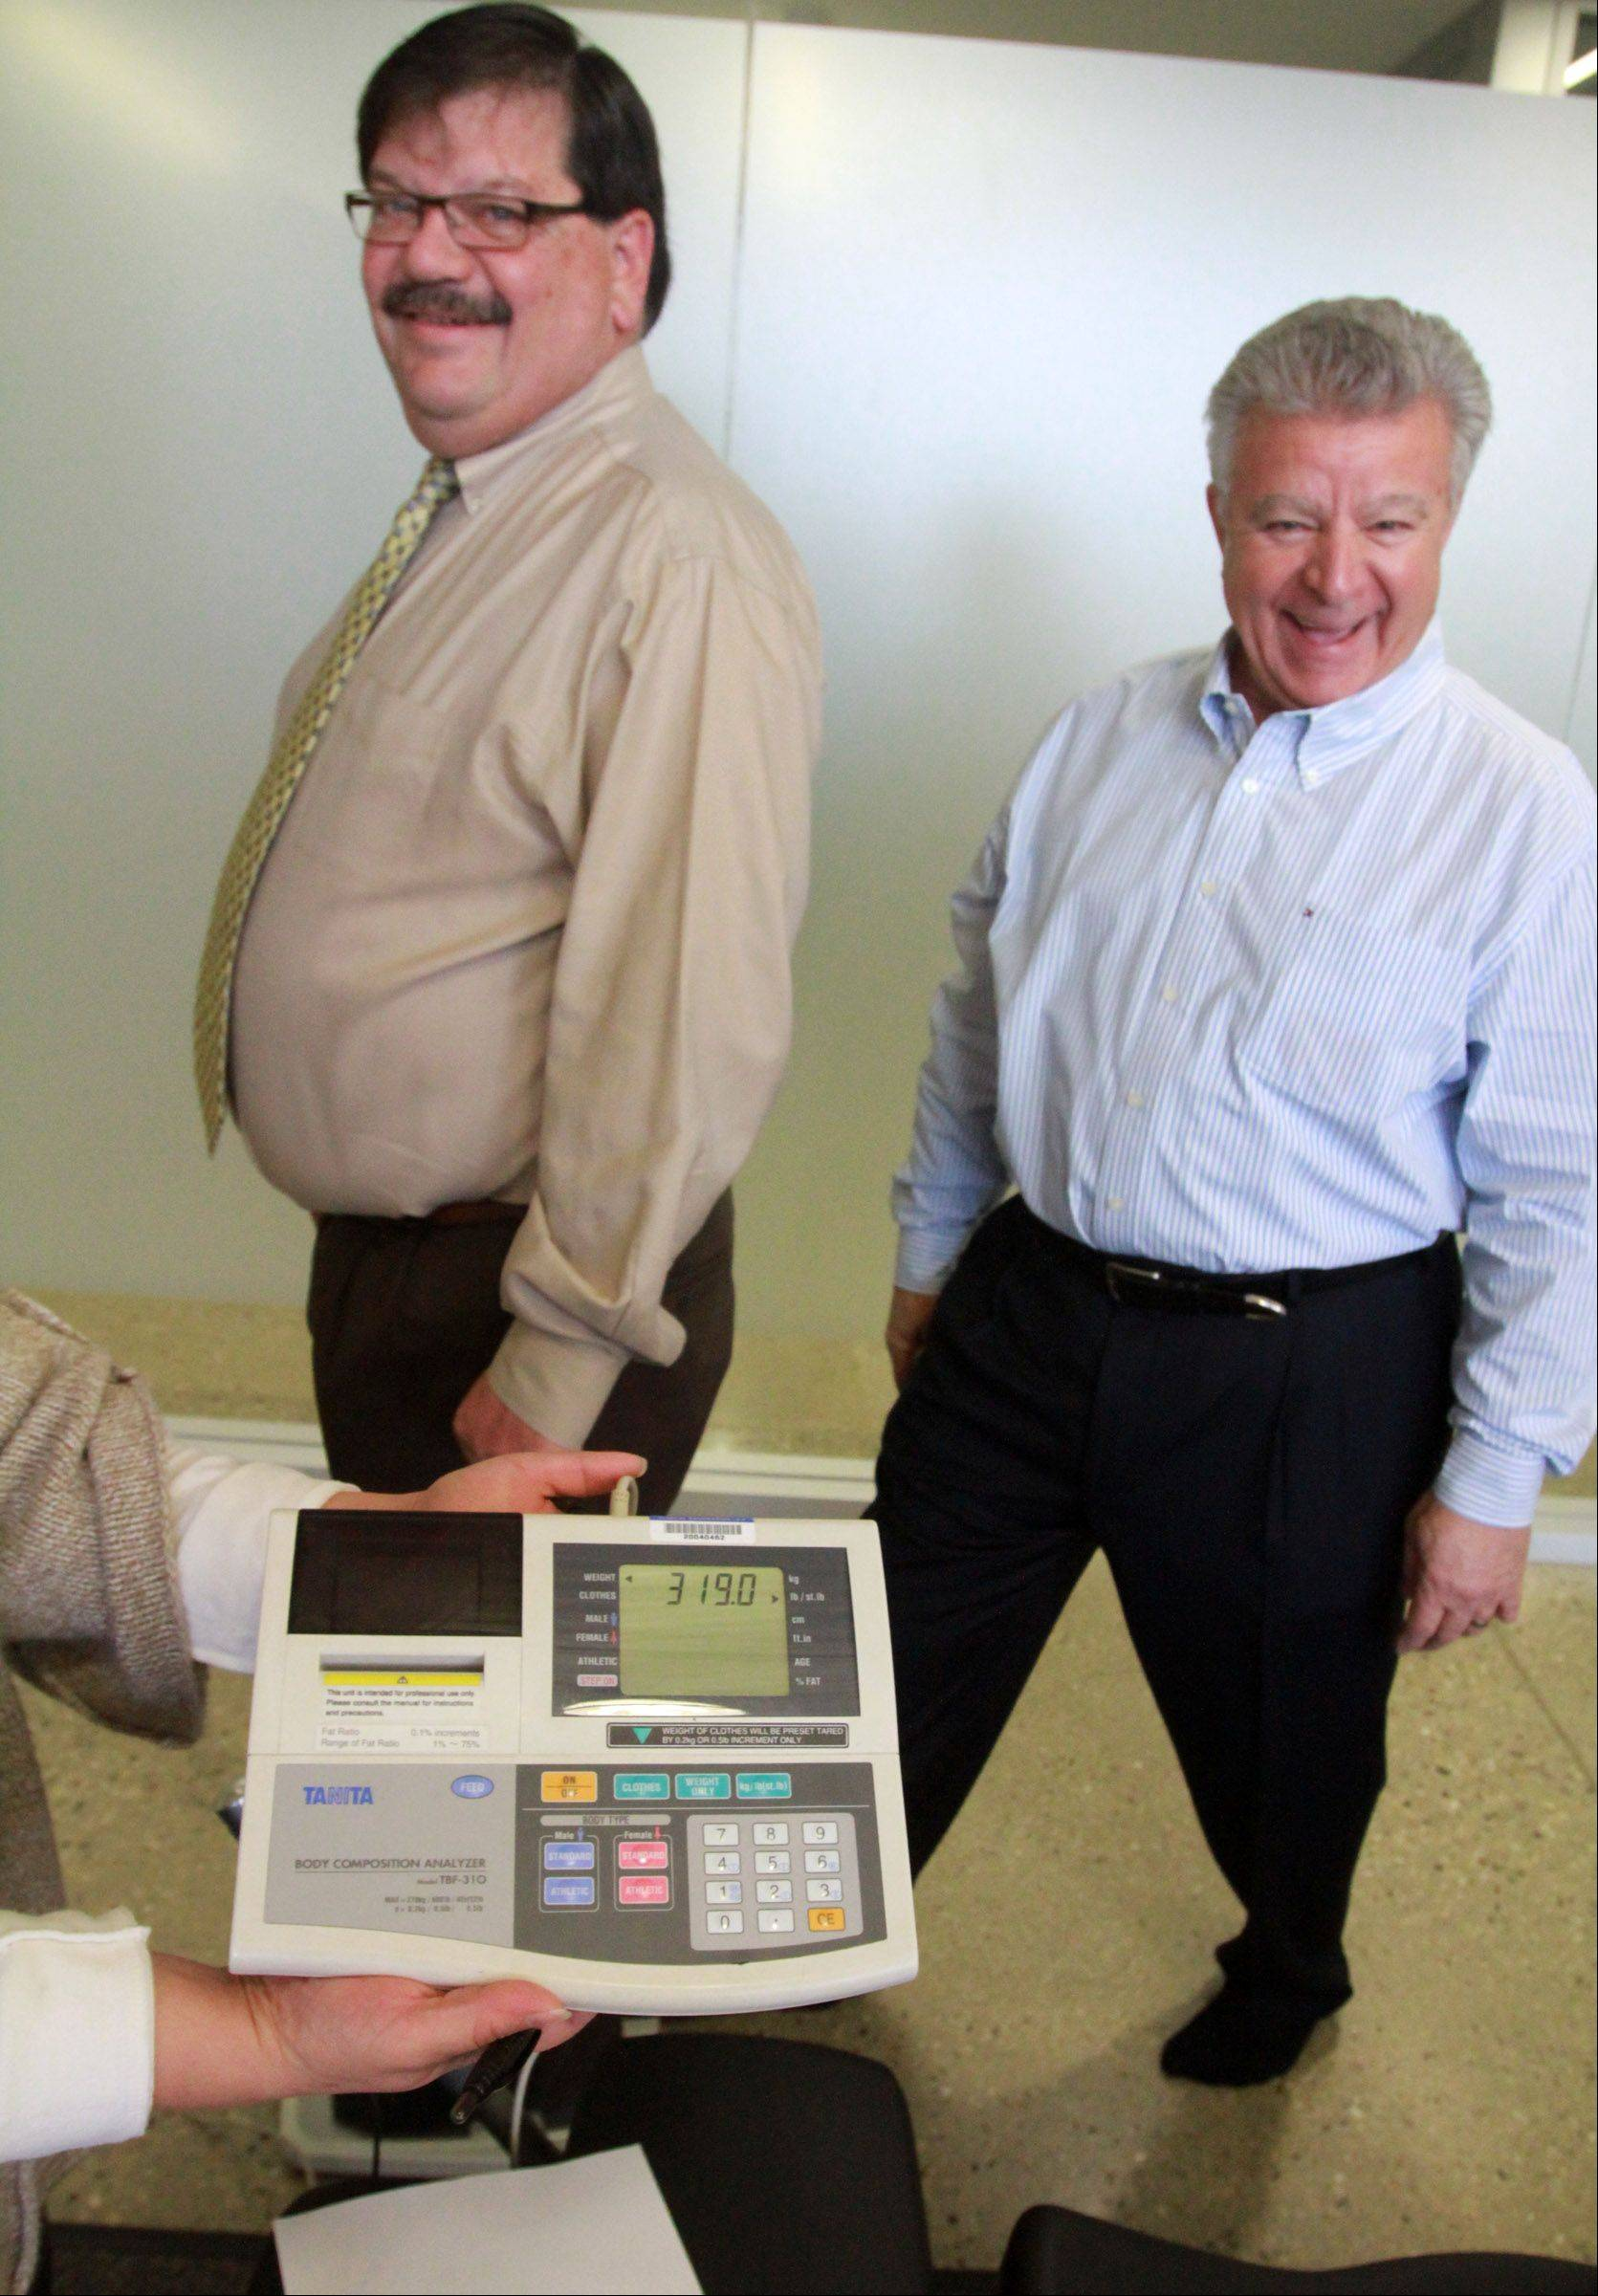 Carol Stream Village President Frank Saverino tries to gain a competitive edge by stepping on the scale as Hanover Park Mayor Rodney Craig completes the final weigh-in of their eight-week weight-loss challenge.